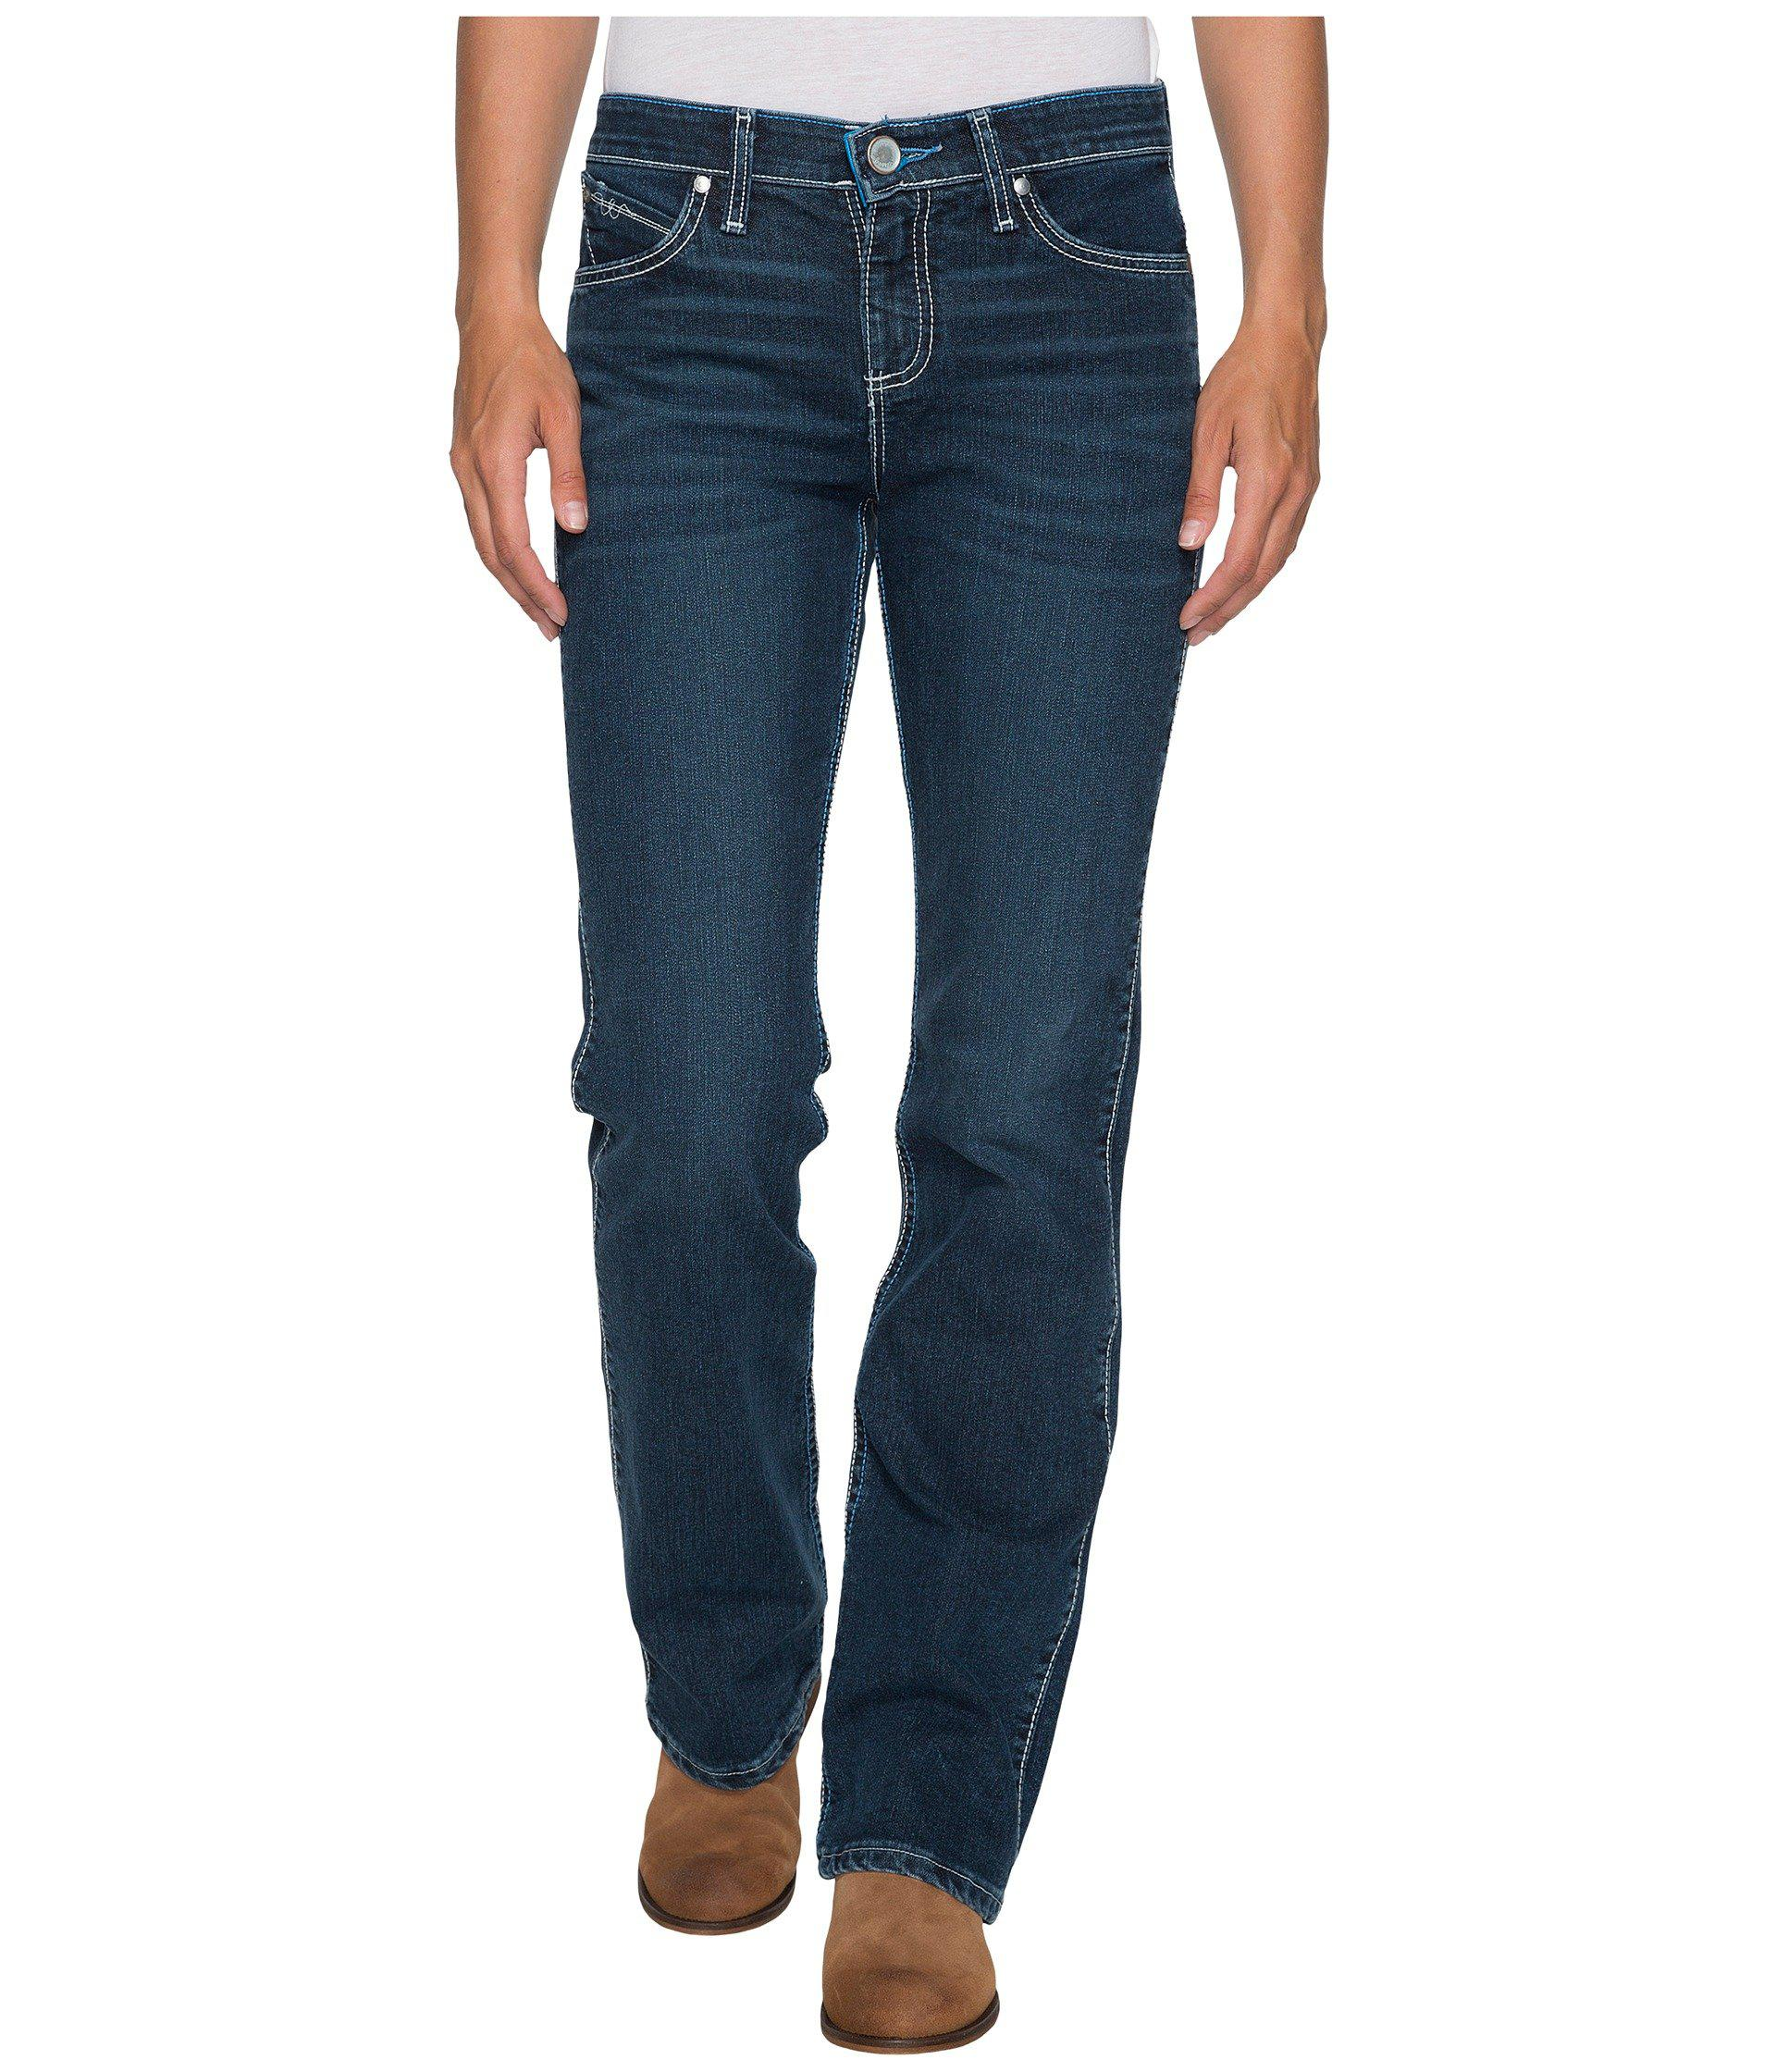 Lyst Wrangler Cool Vantage Q baby Jeans in Blue for Men